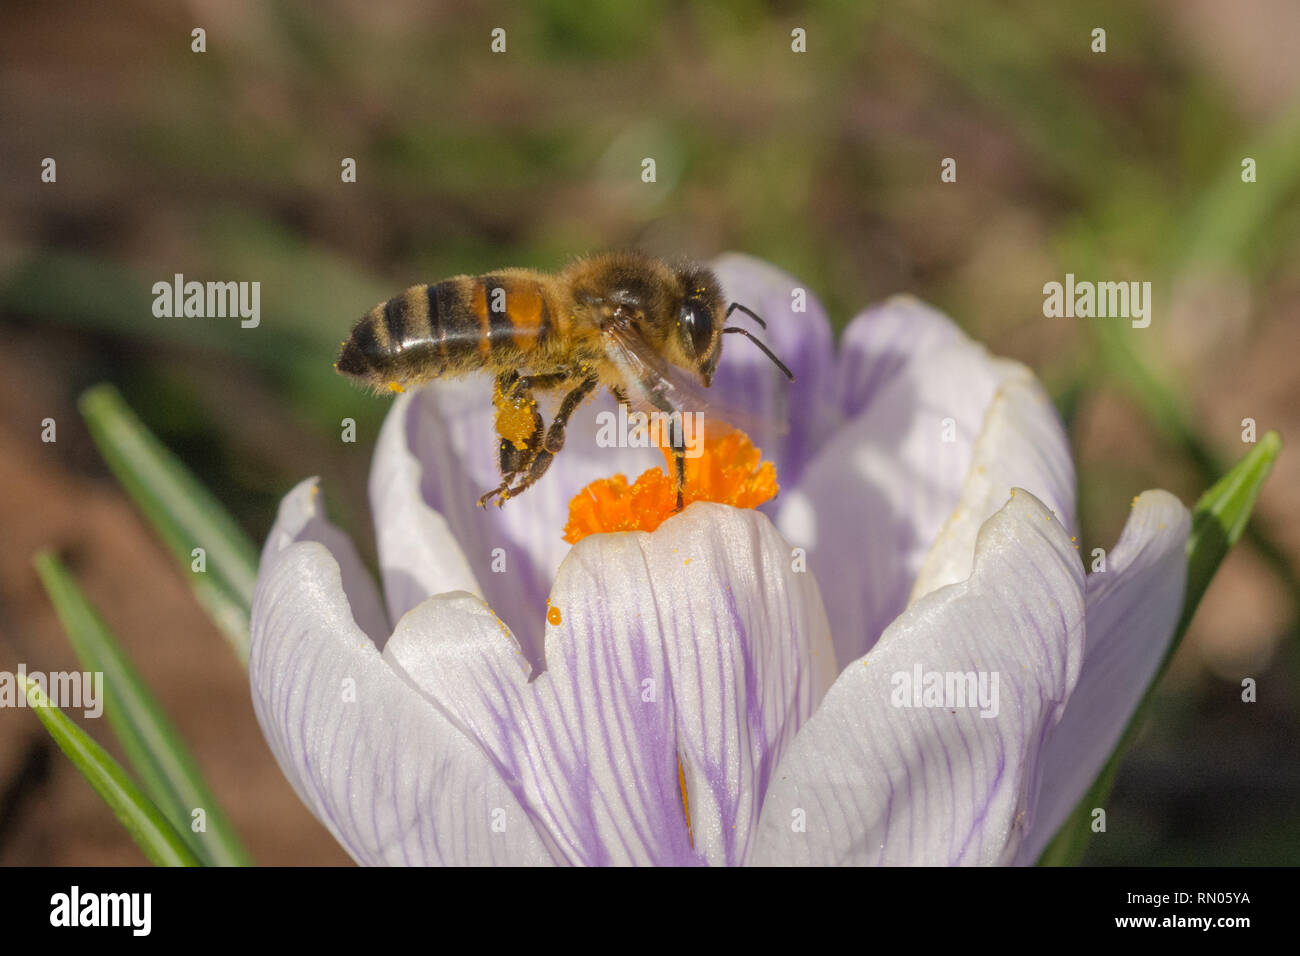 Bee (honey bee), an important pollinator, nectaring on a crocus flower in February. Spring wildlife, social insect. - Stock Image